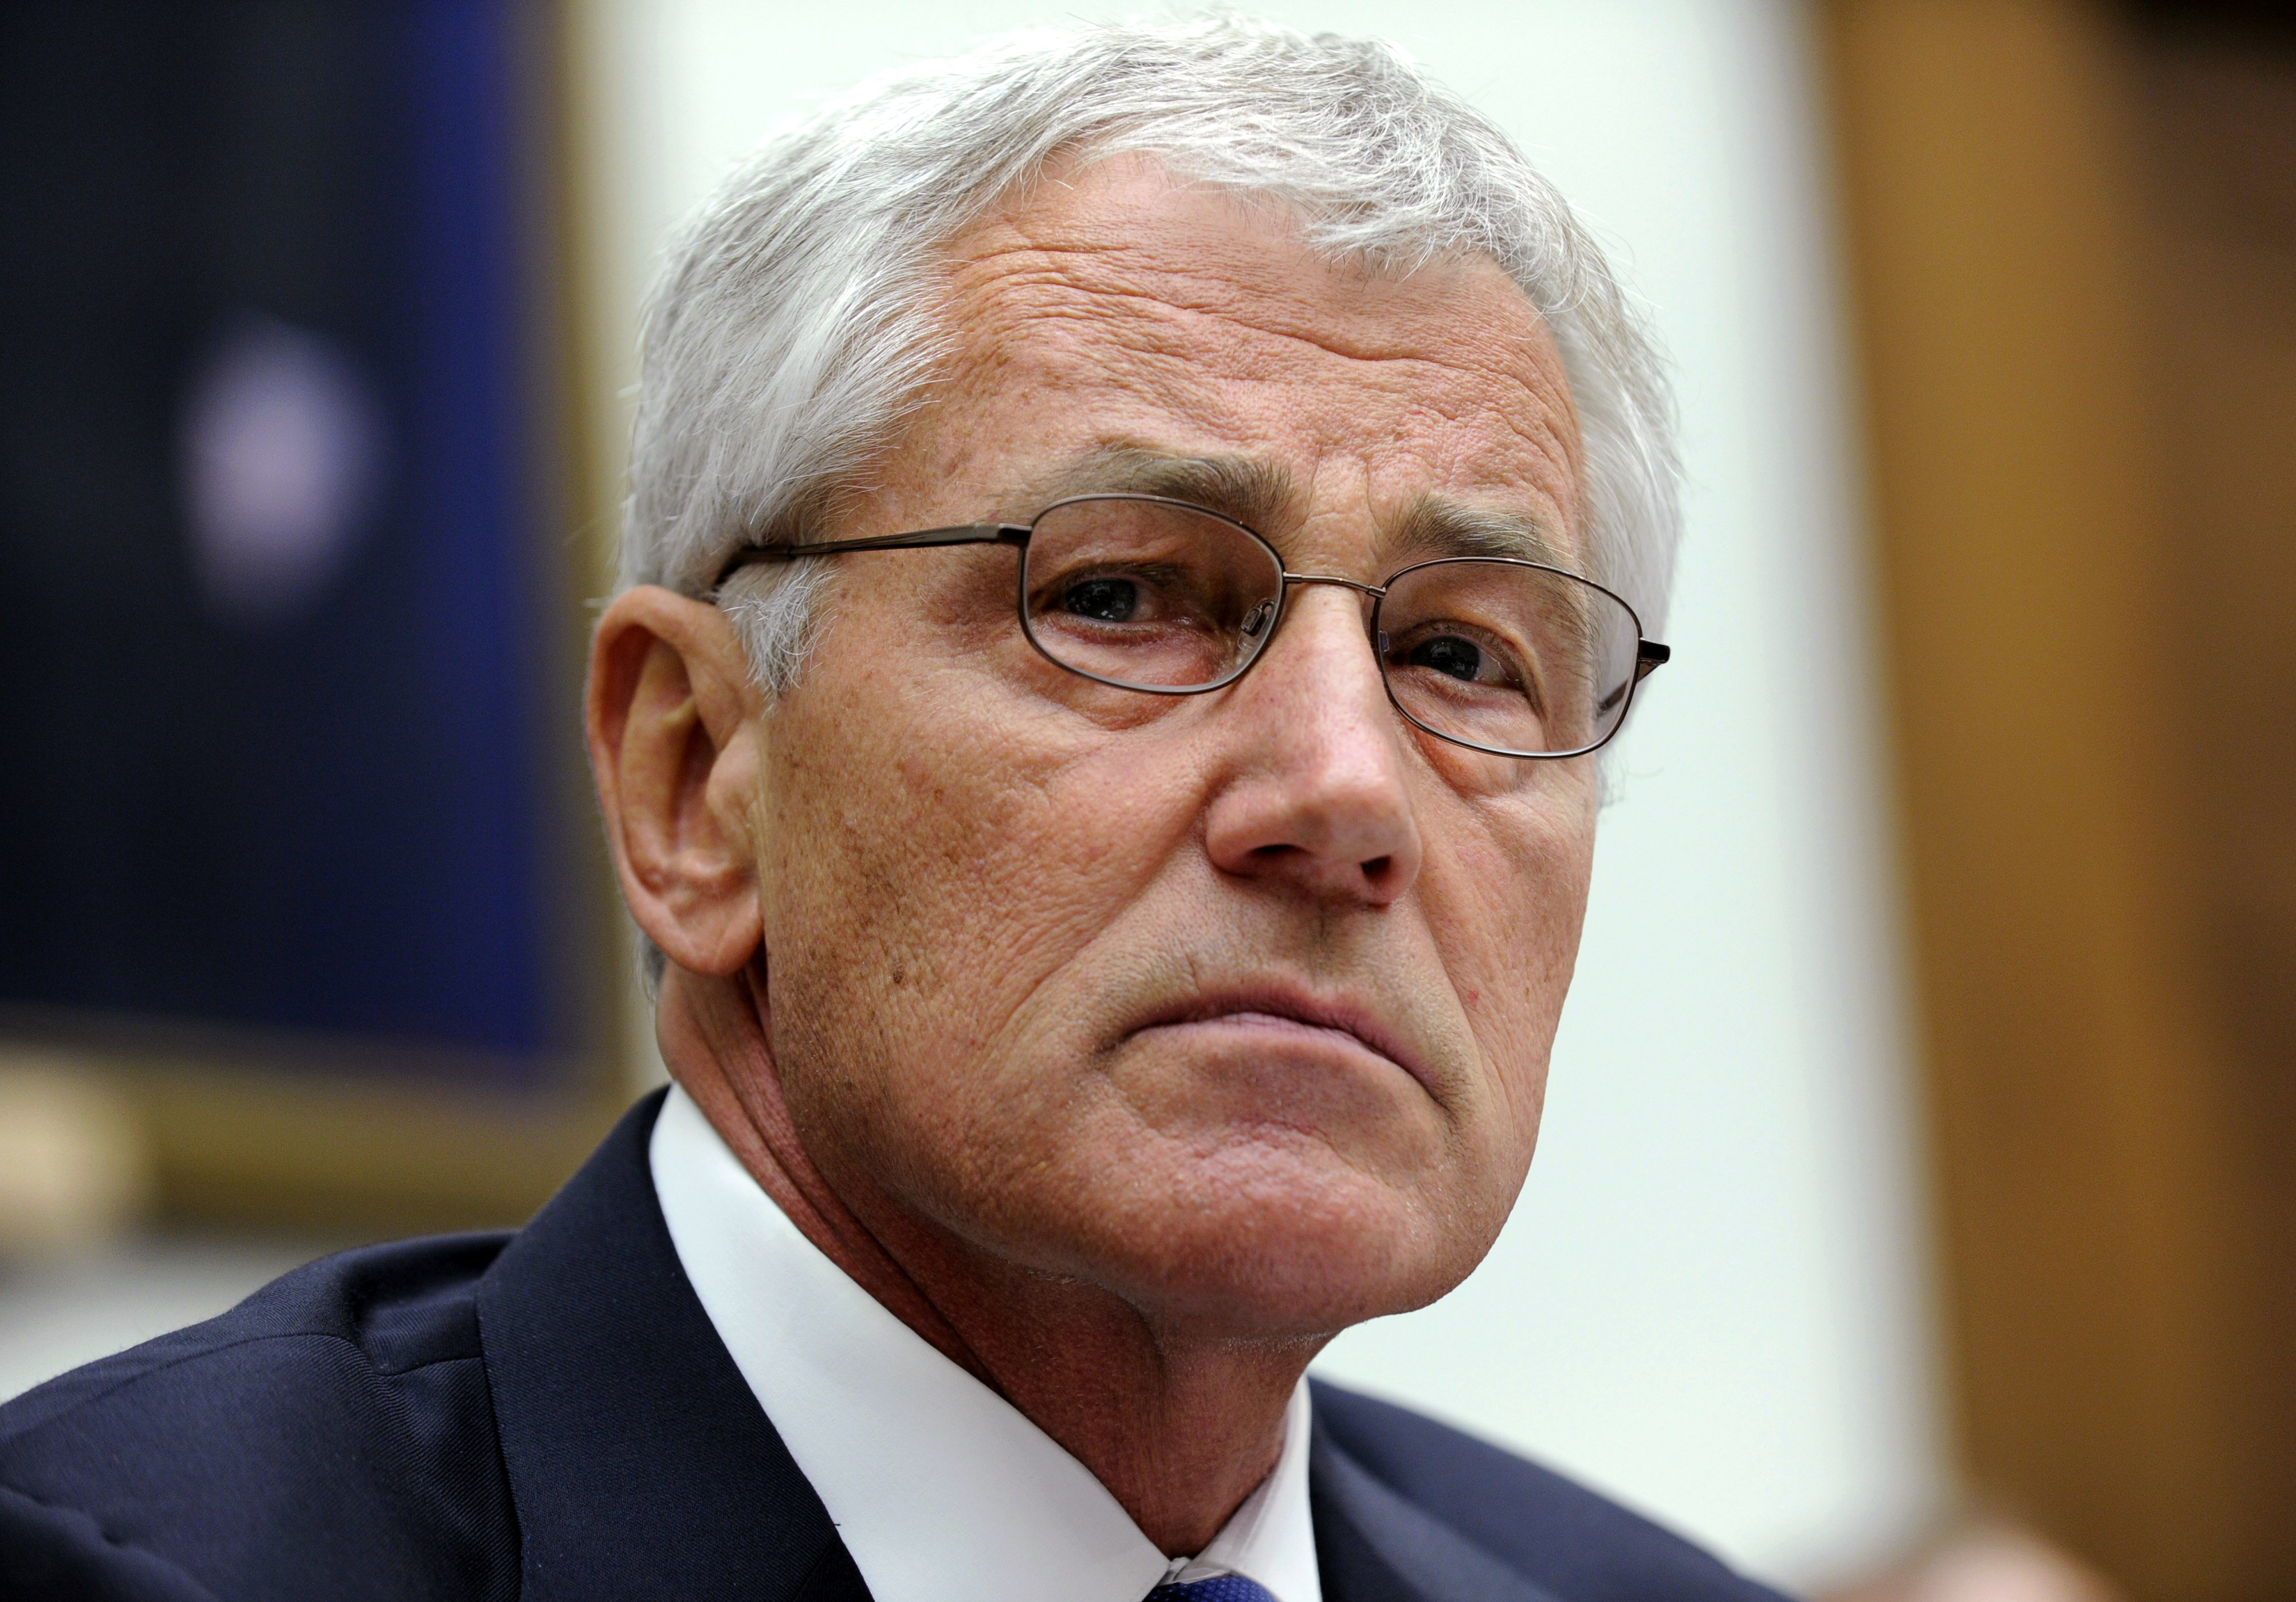 Defense Secretary Chuck Hagel listens to opening statements prior to testifying on Capitol Hill in Washington, June 11, 2014.